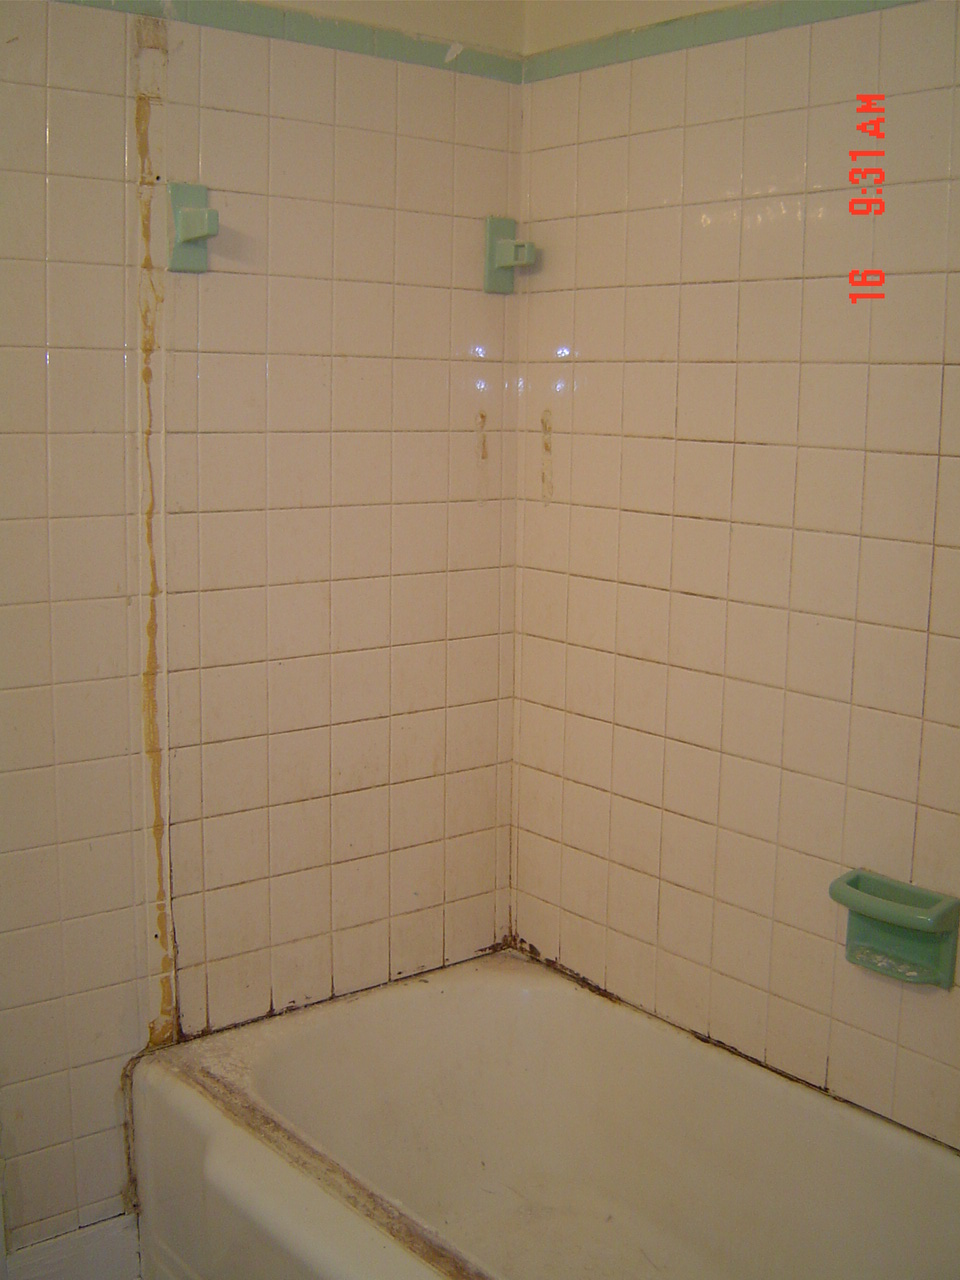 Bathtub U0026 Tile Surround Before Reglazing